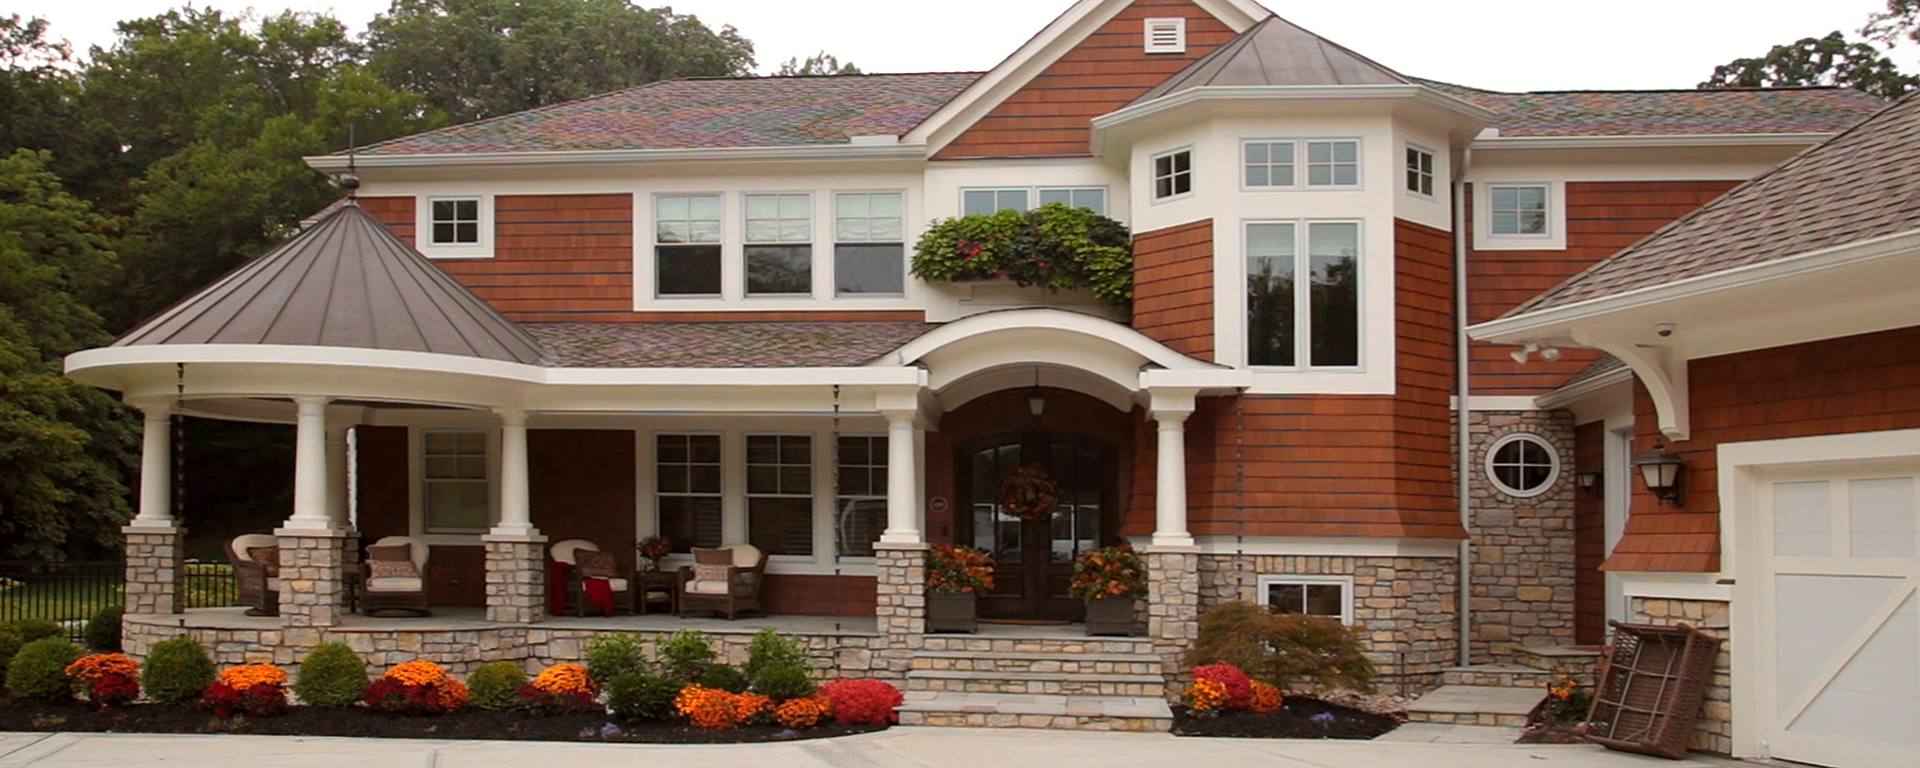 The best of both worlds home style for Americas best home builders